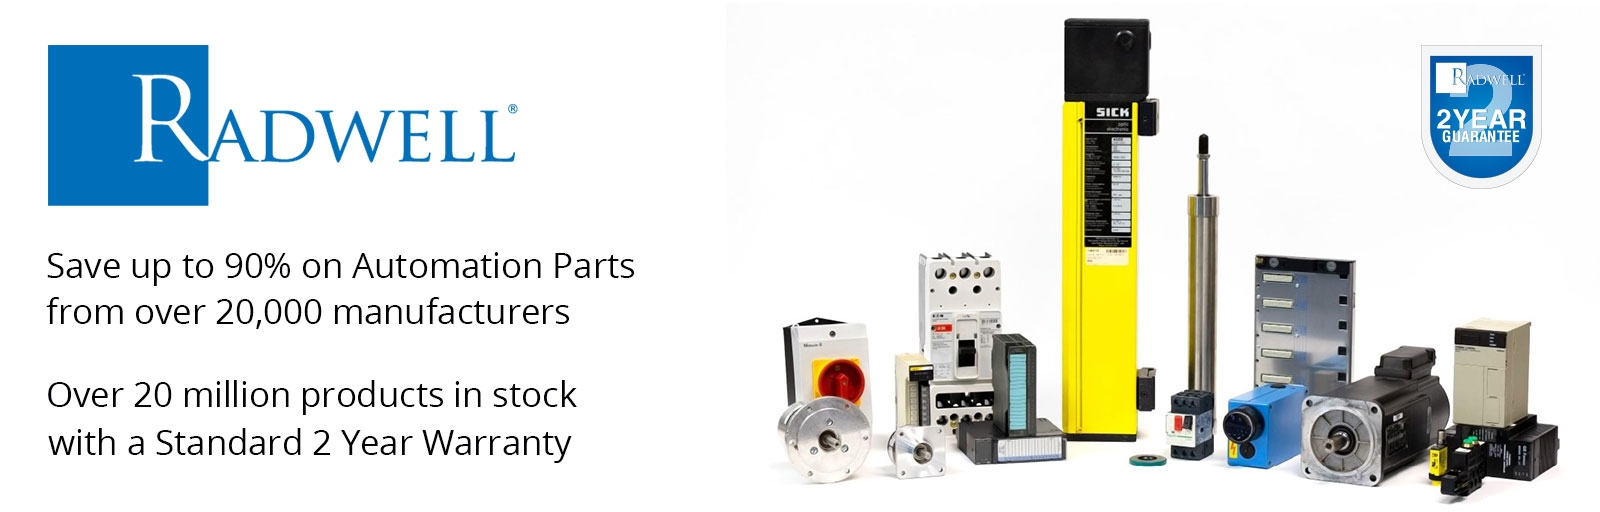 Radwell-International-New-and-Used-Industrial-Automation-Parts